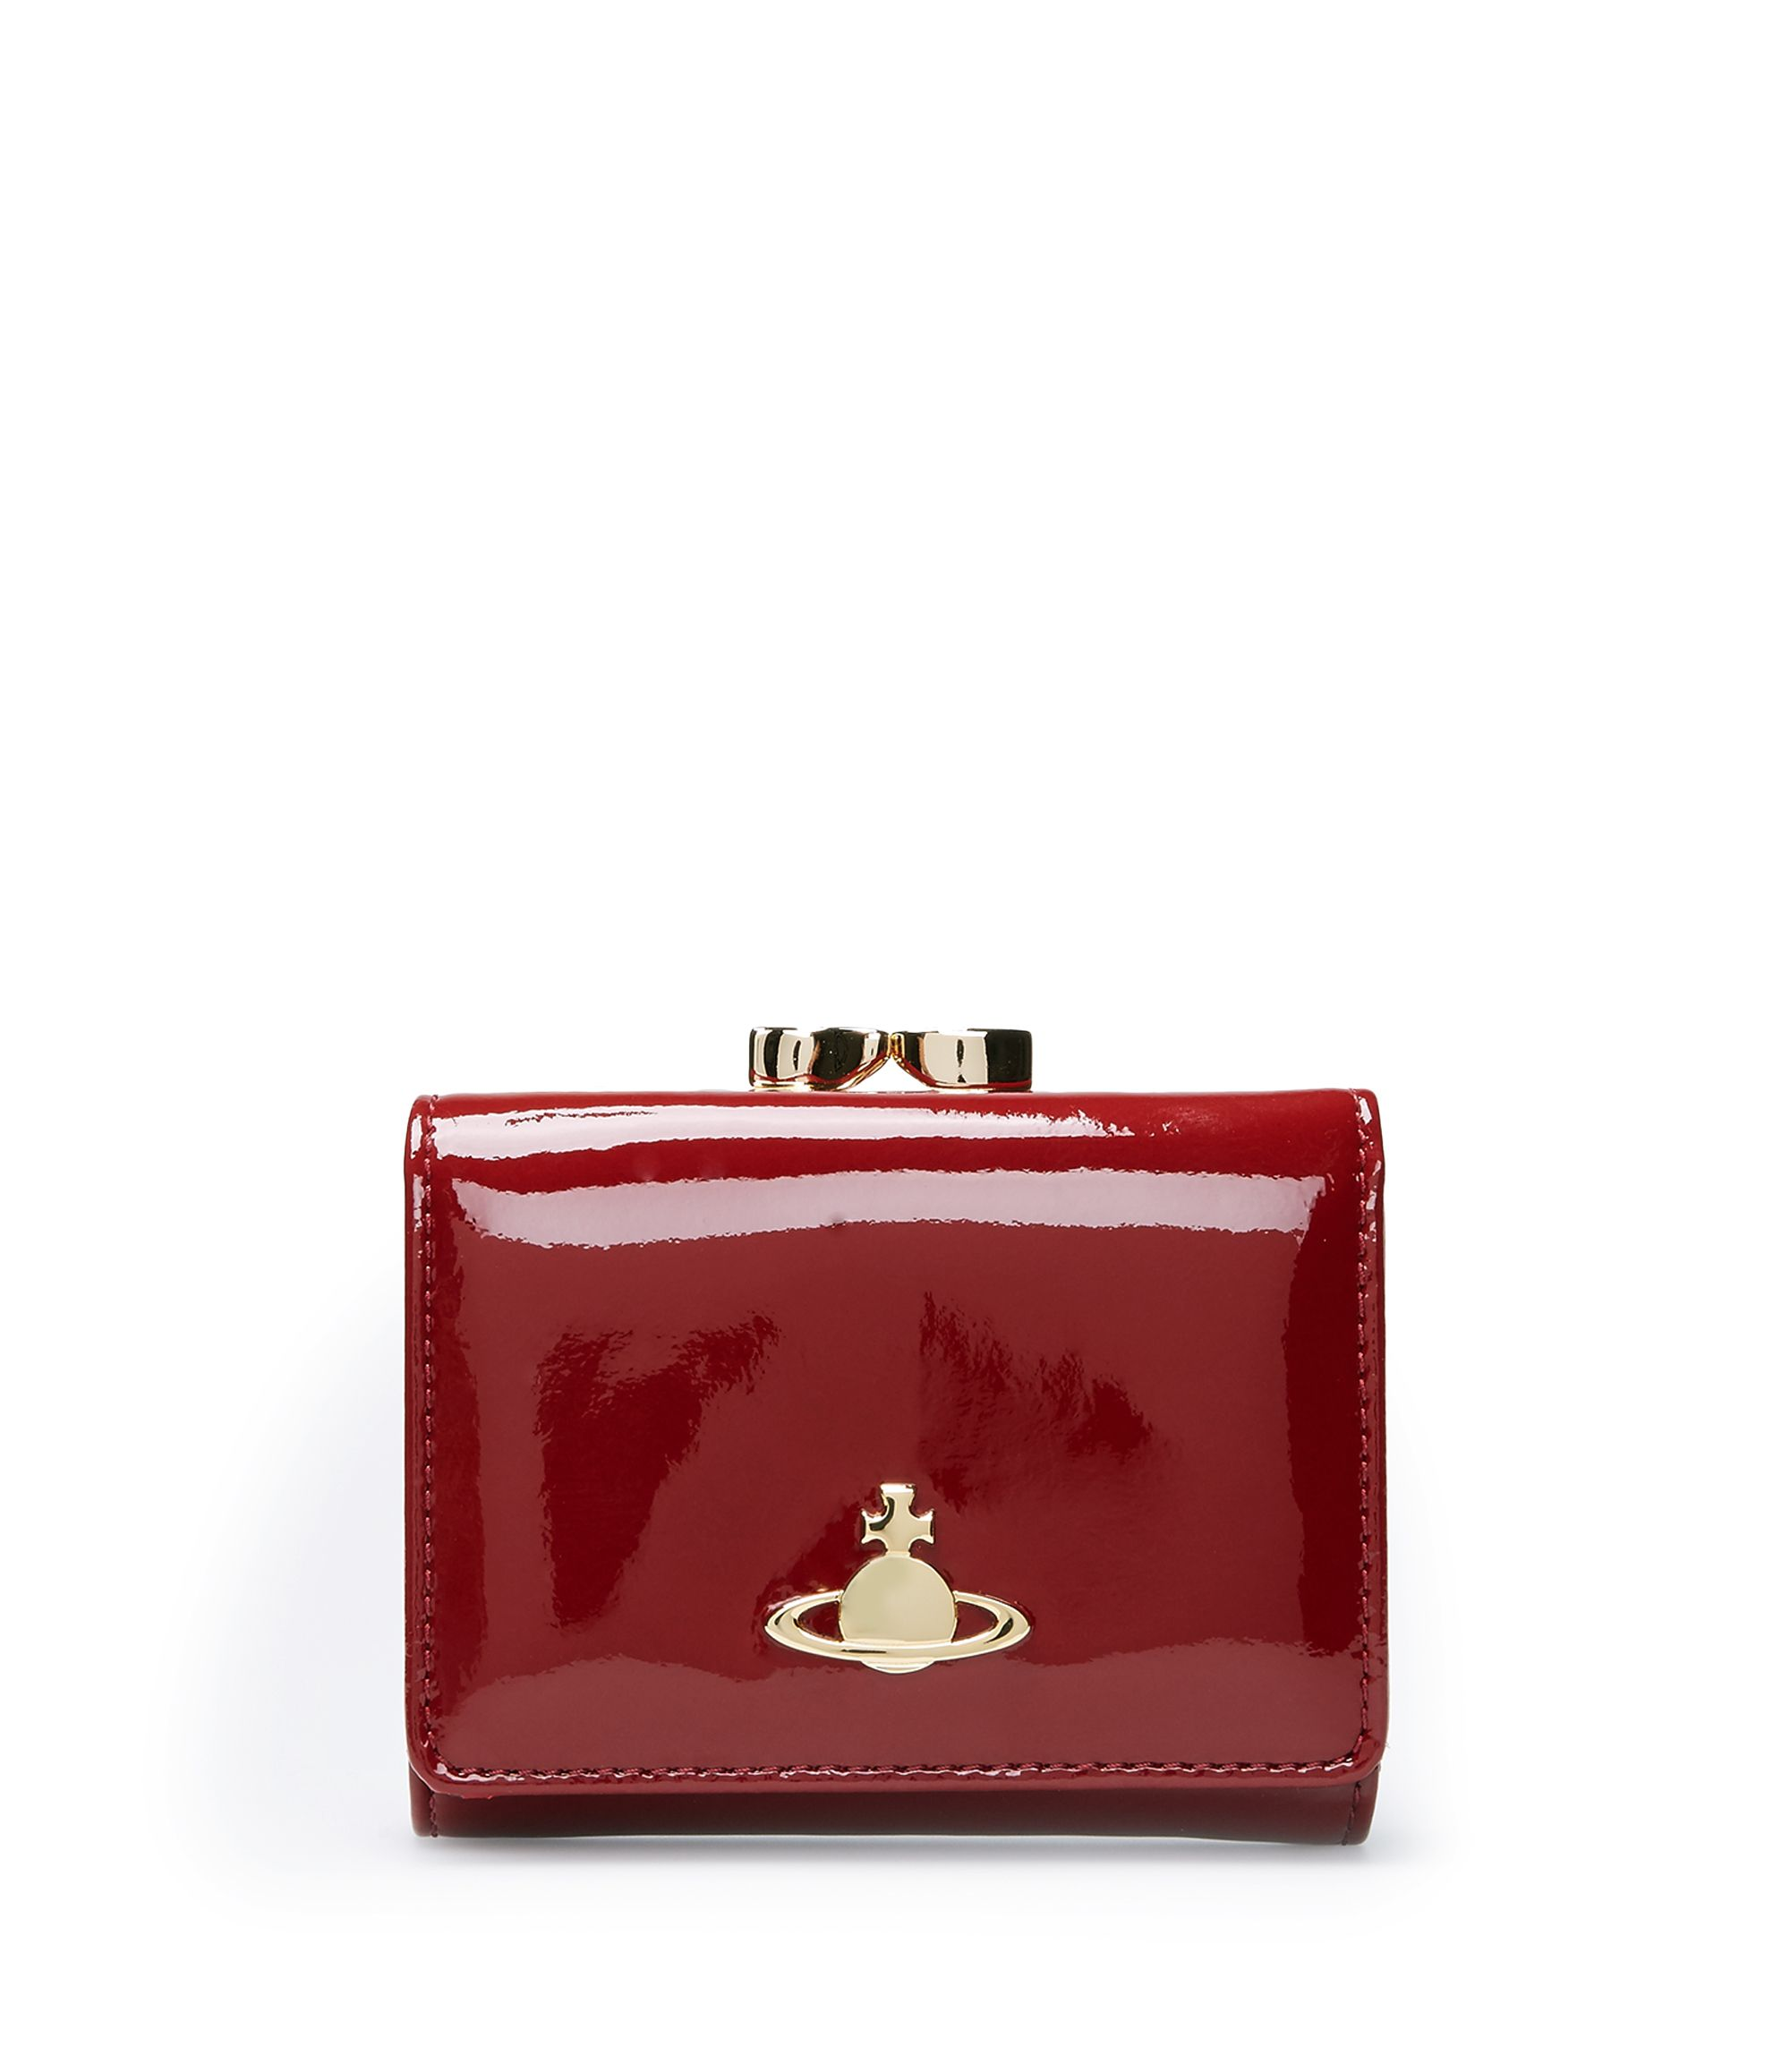 VIVIENNE WESTWOOD Bordeaux Mirror Ball 1311 Purse. #viviennewestwood #bags #patent #wallet #accessories #